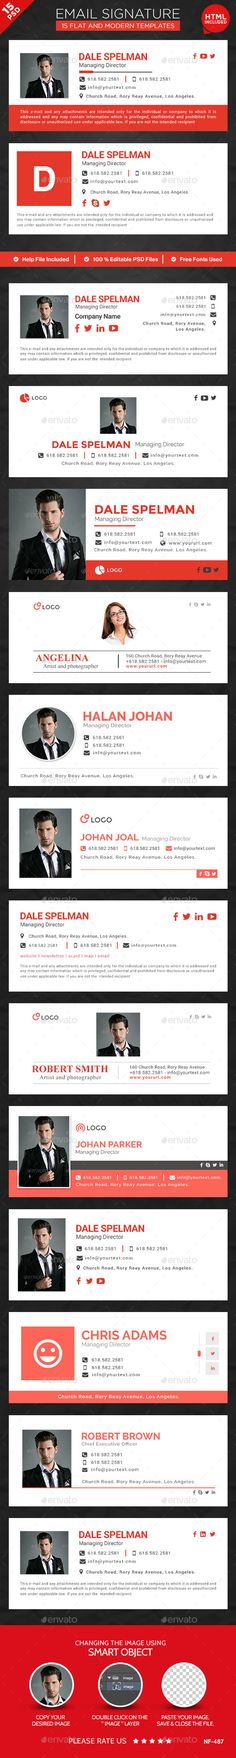 15 Email Signature Templates - HTML Files Included                                                                                                                                                                                 Más